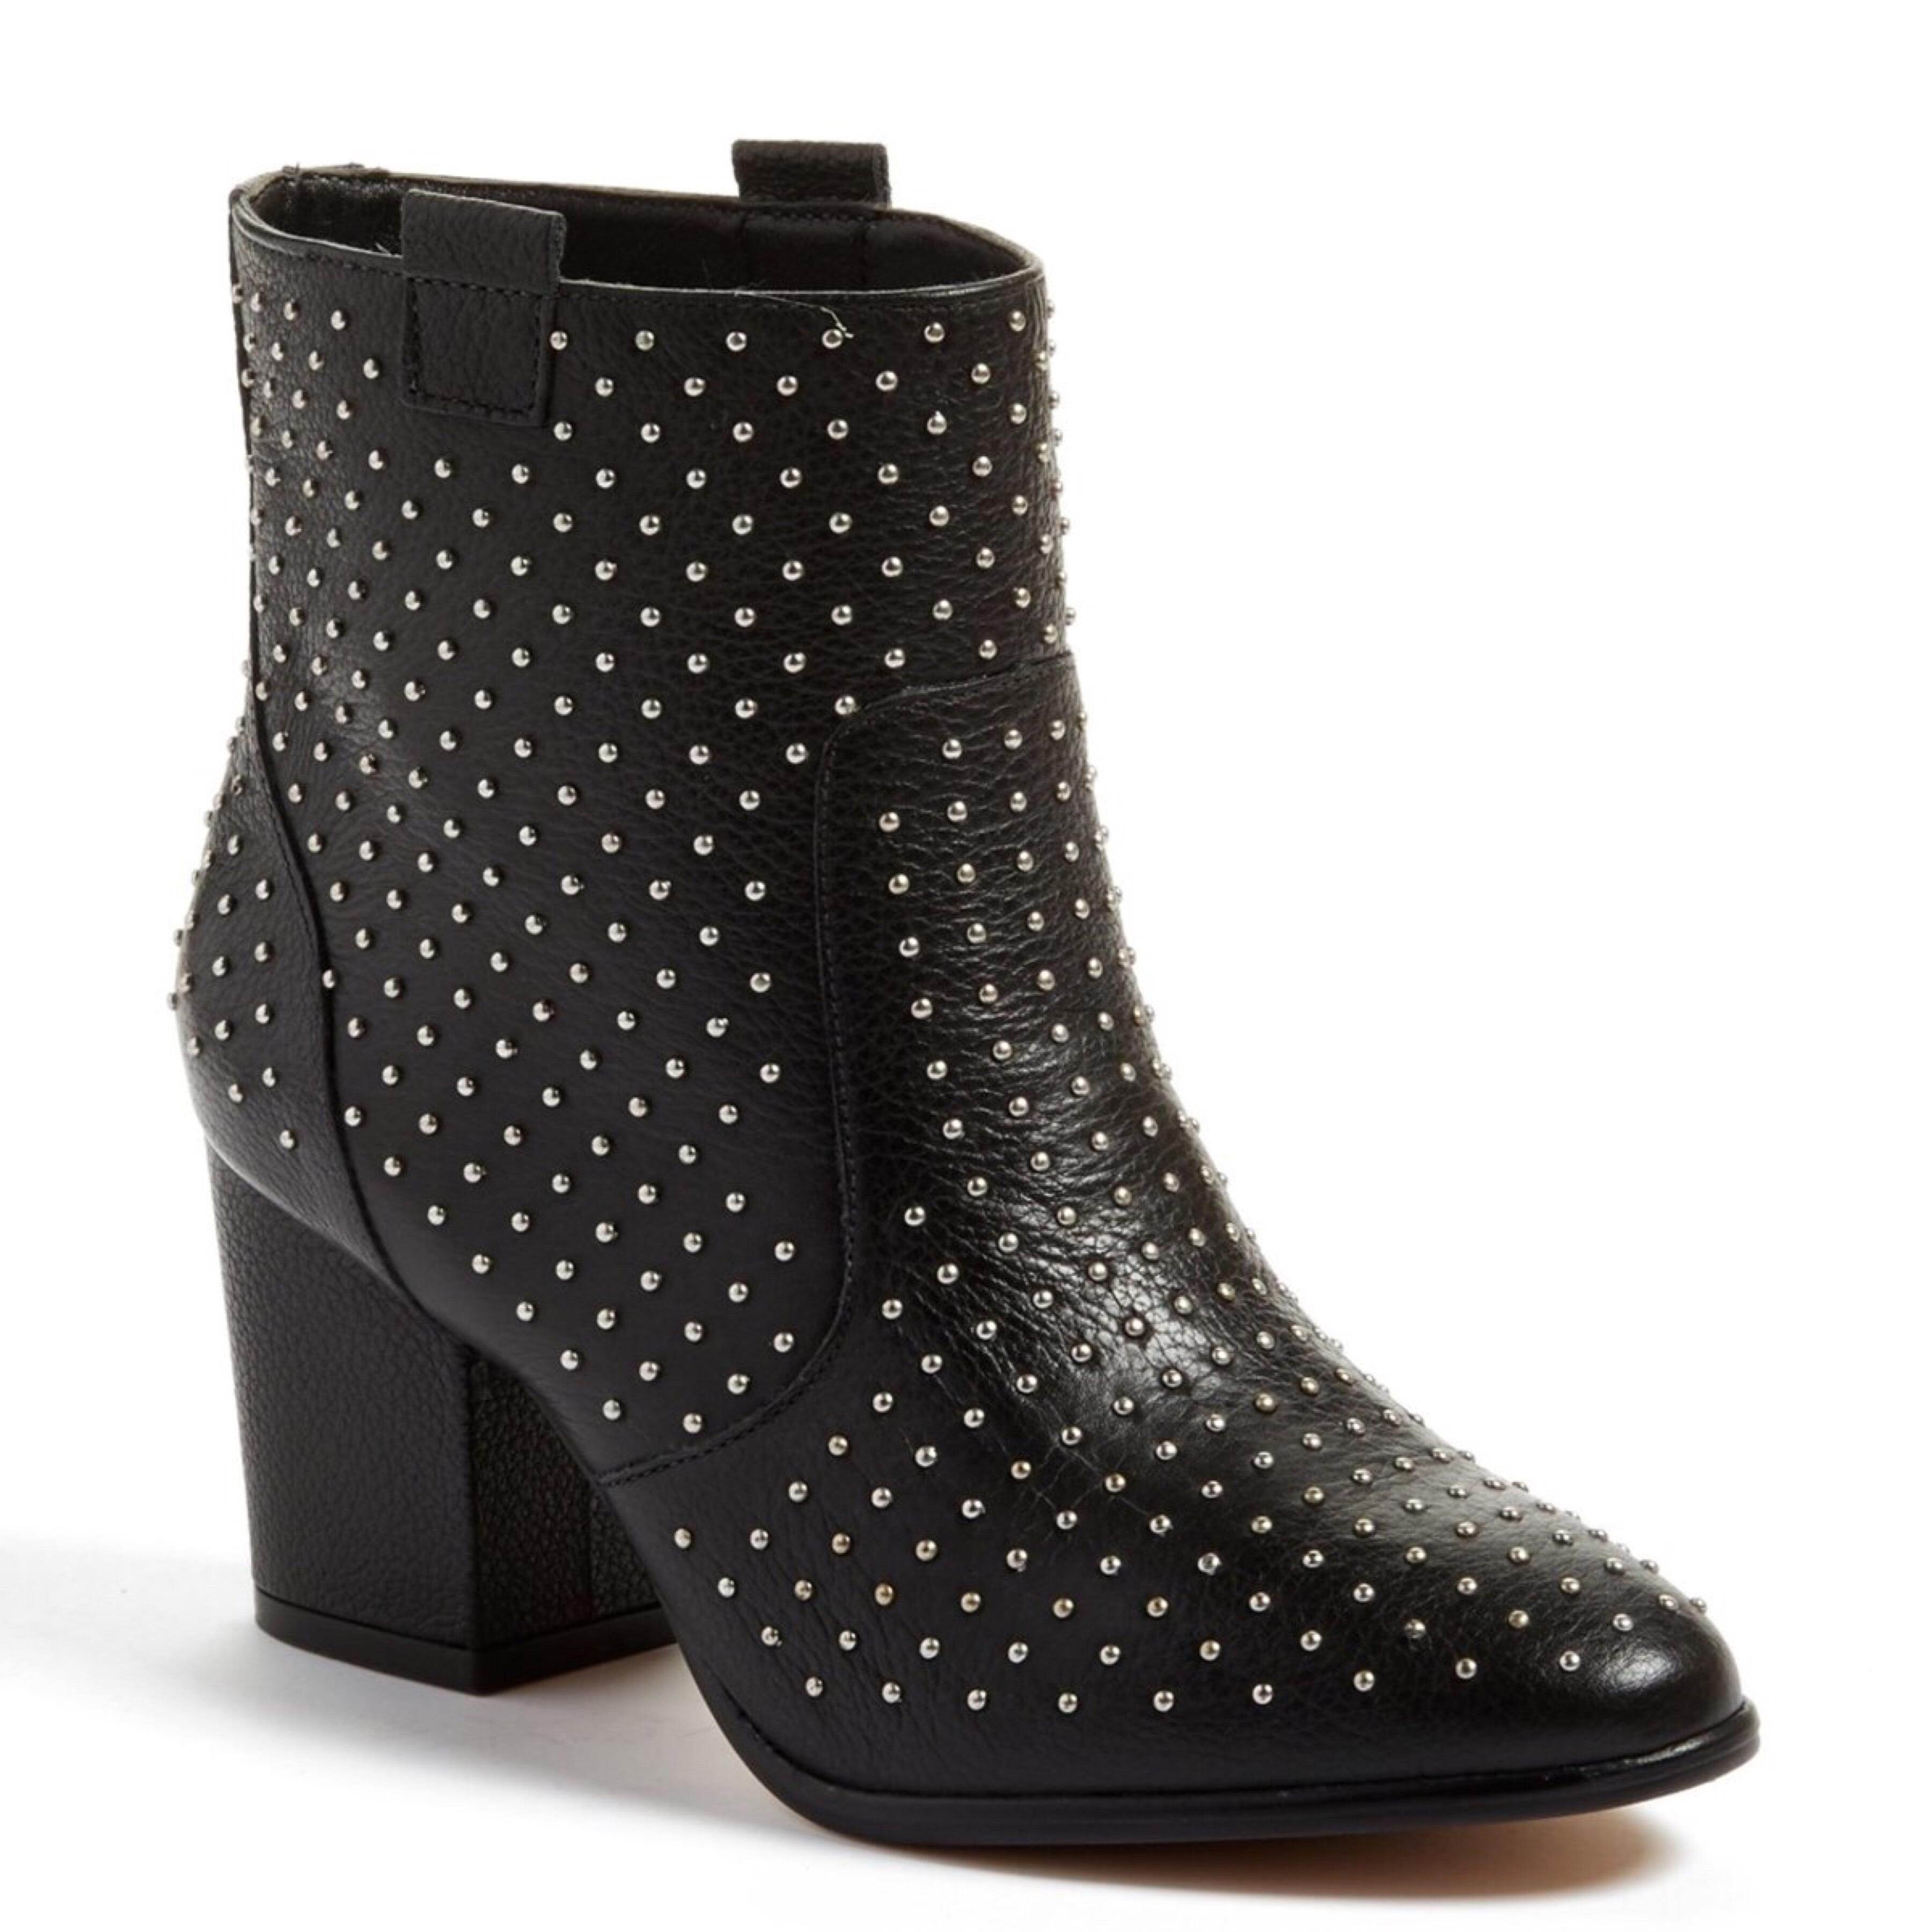 explore for sale Rebecca Minkoff Studded Ankle Boots clearance hot sale limited edition for sale cheap footlocker finishline dATcyI1f